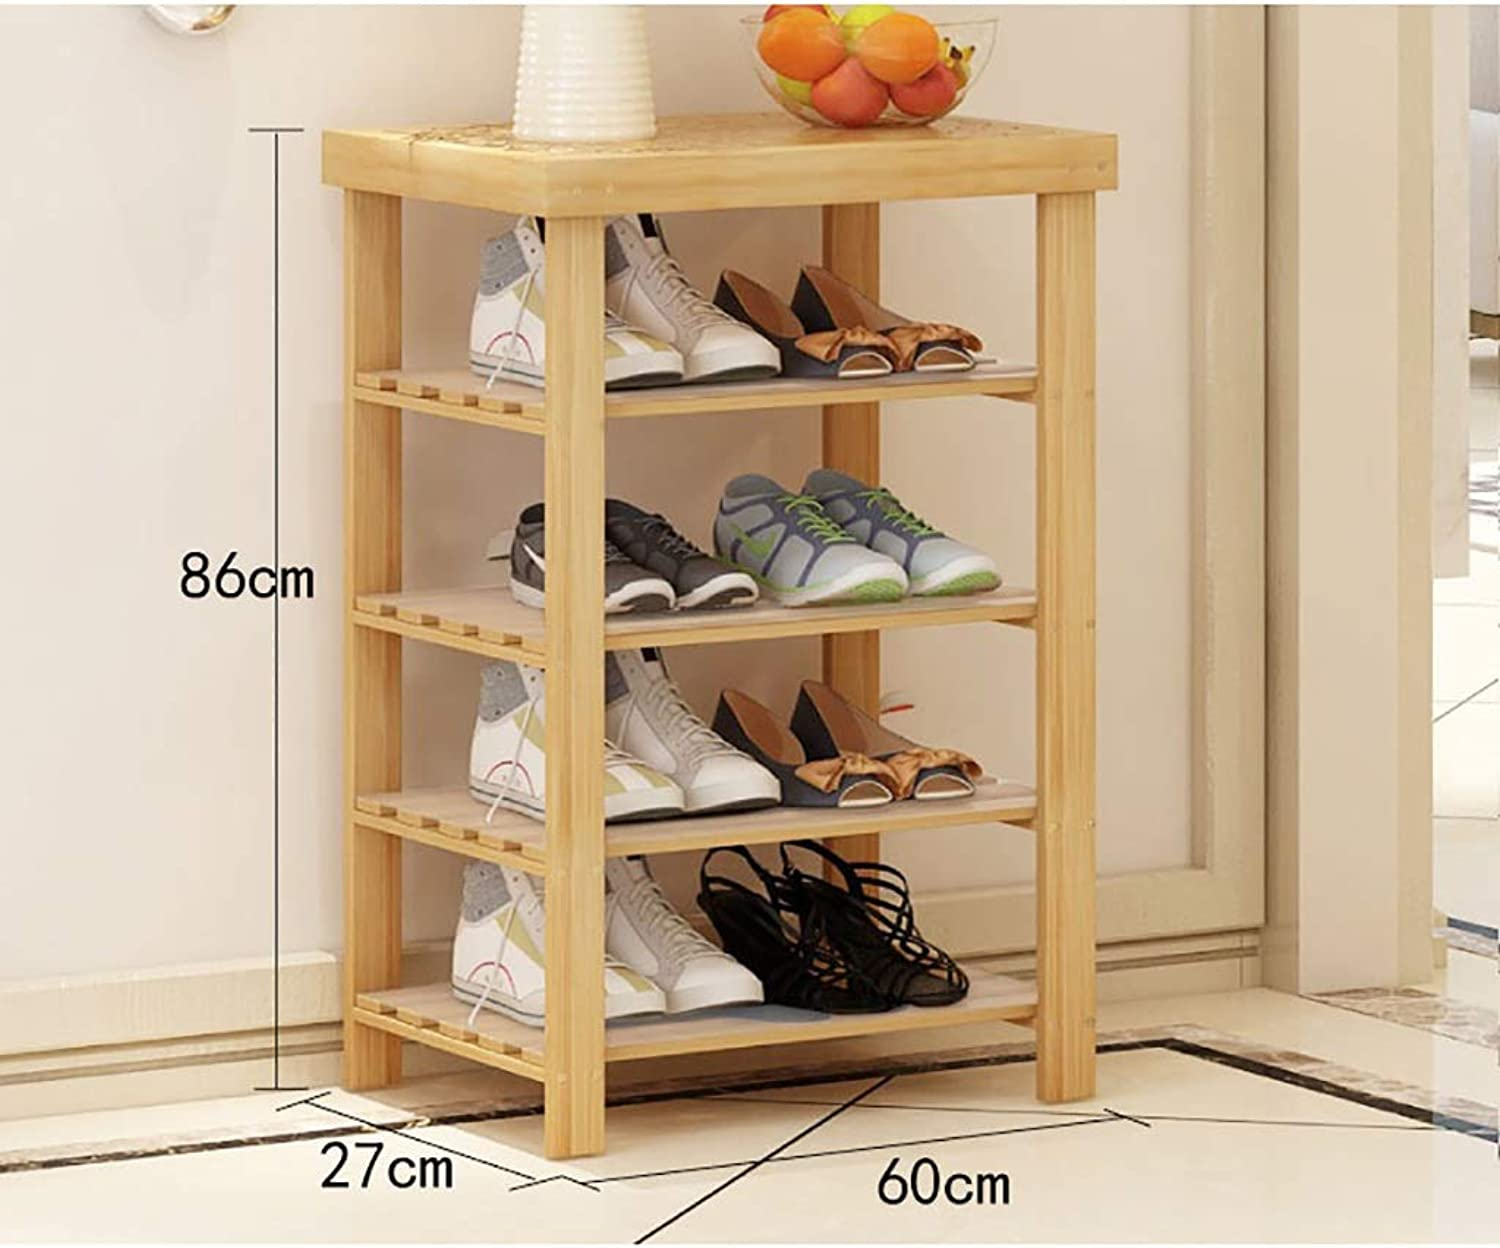 shoes Rack Simple Modern Home Change shoes Stool shoes Cabinet Sofa Stool into The Door Long Bench Storage Stool Rest Stool. (Size   60  27  86cm)